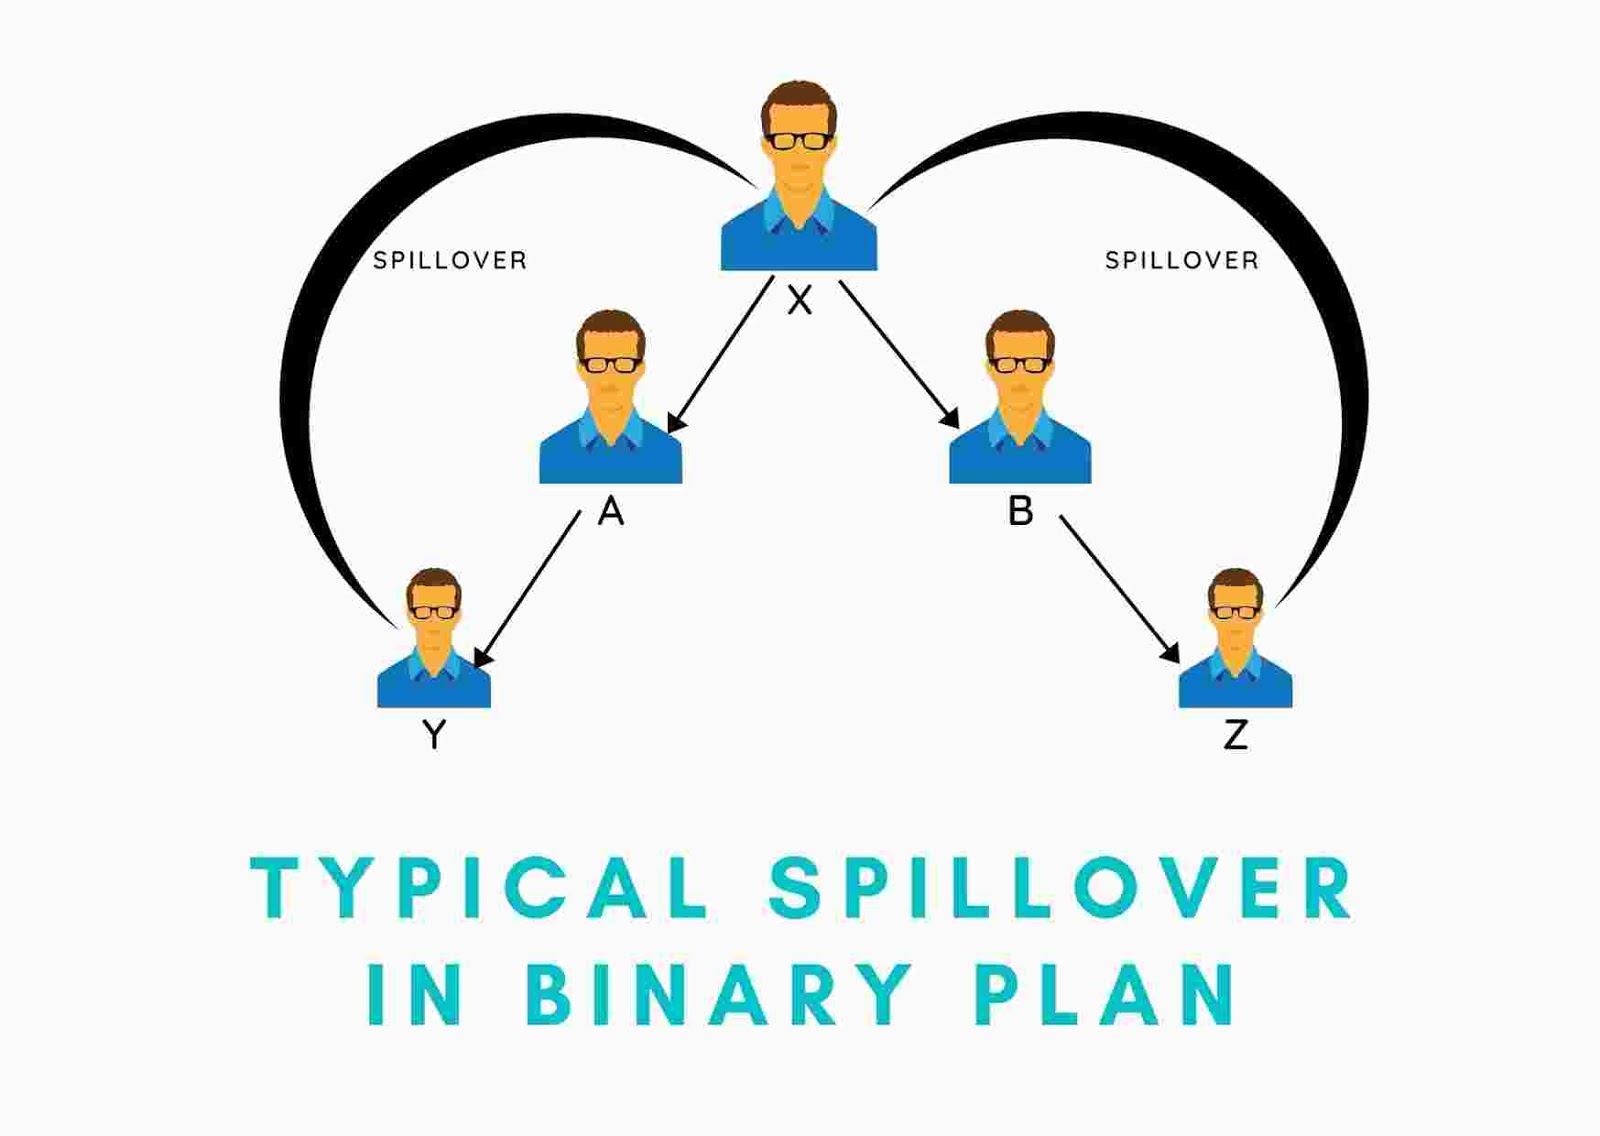 Typical Spillover in Binary Plan